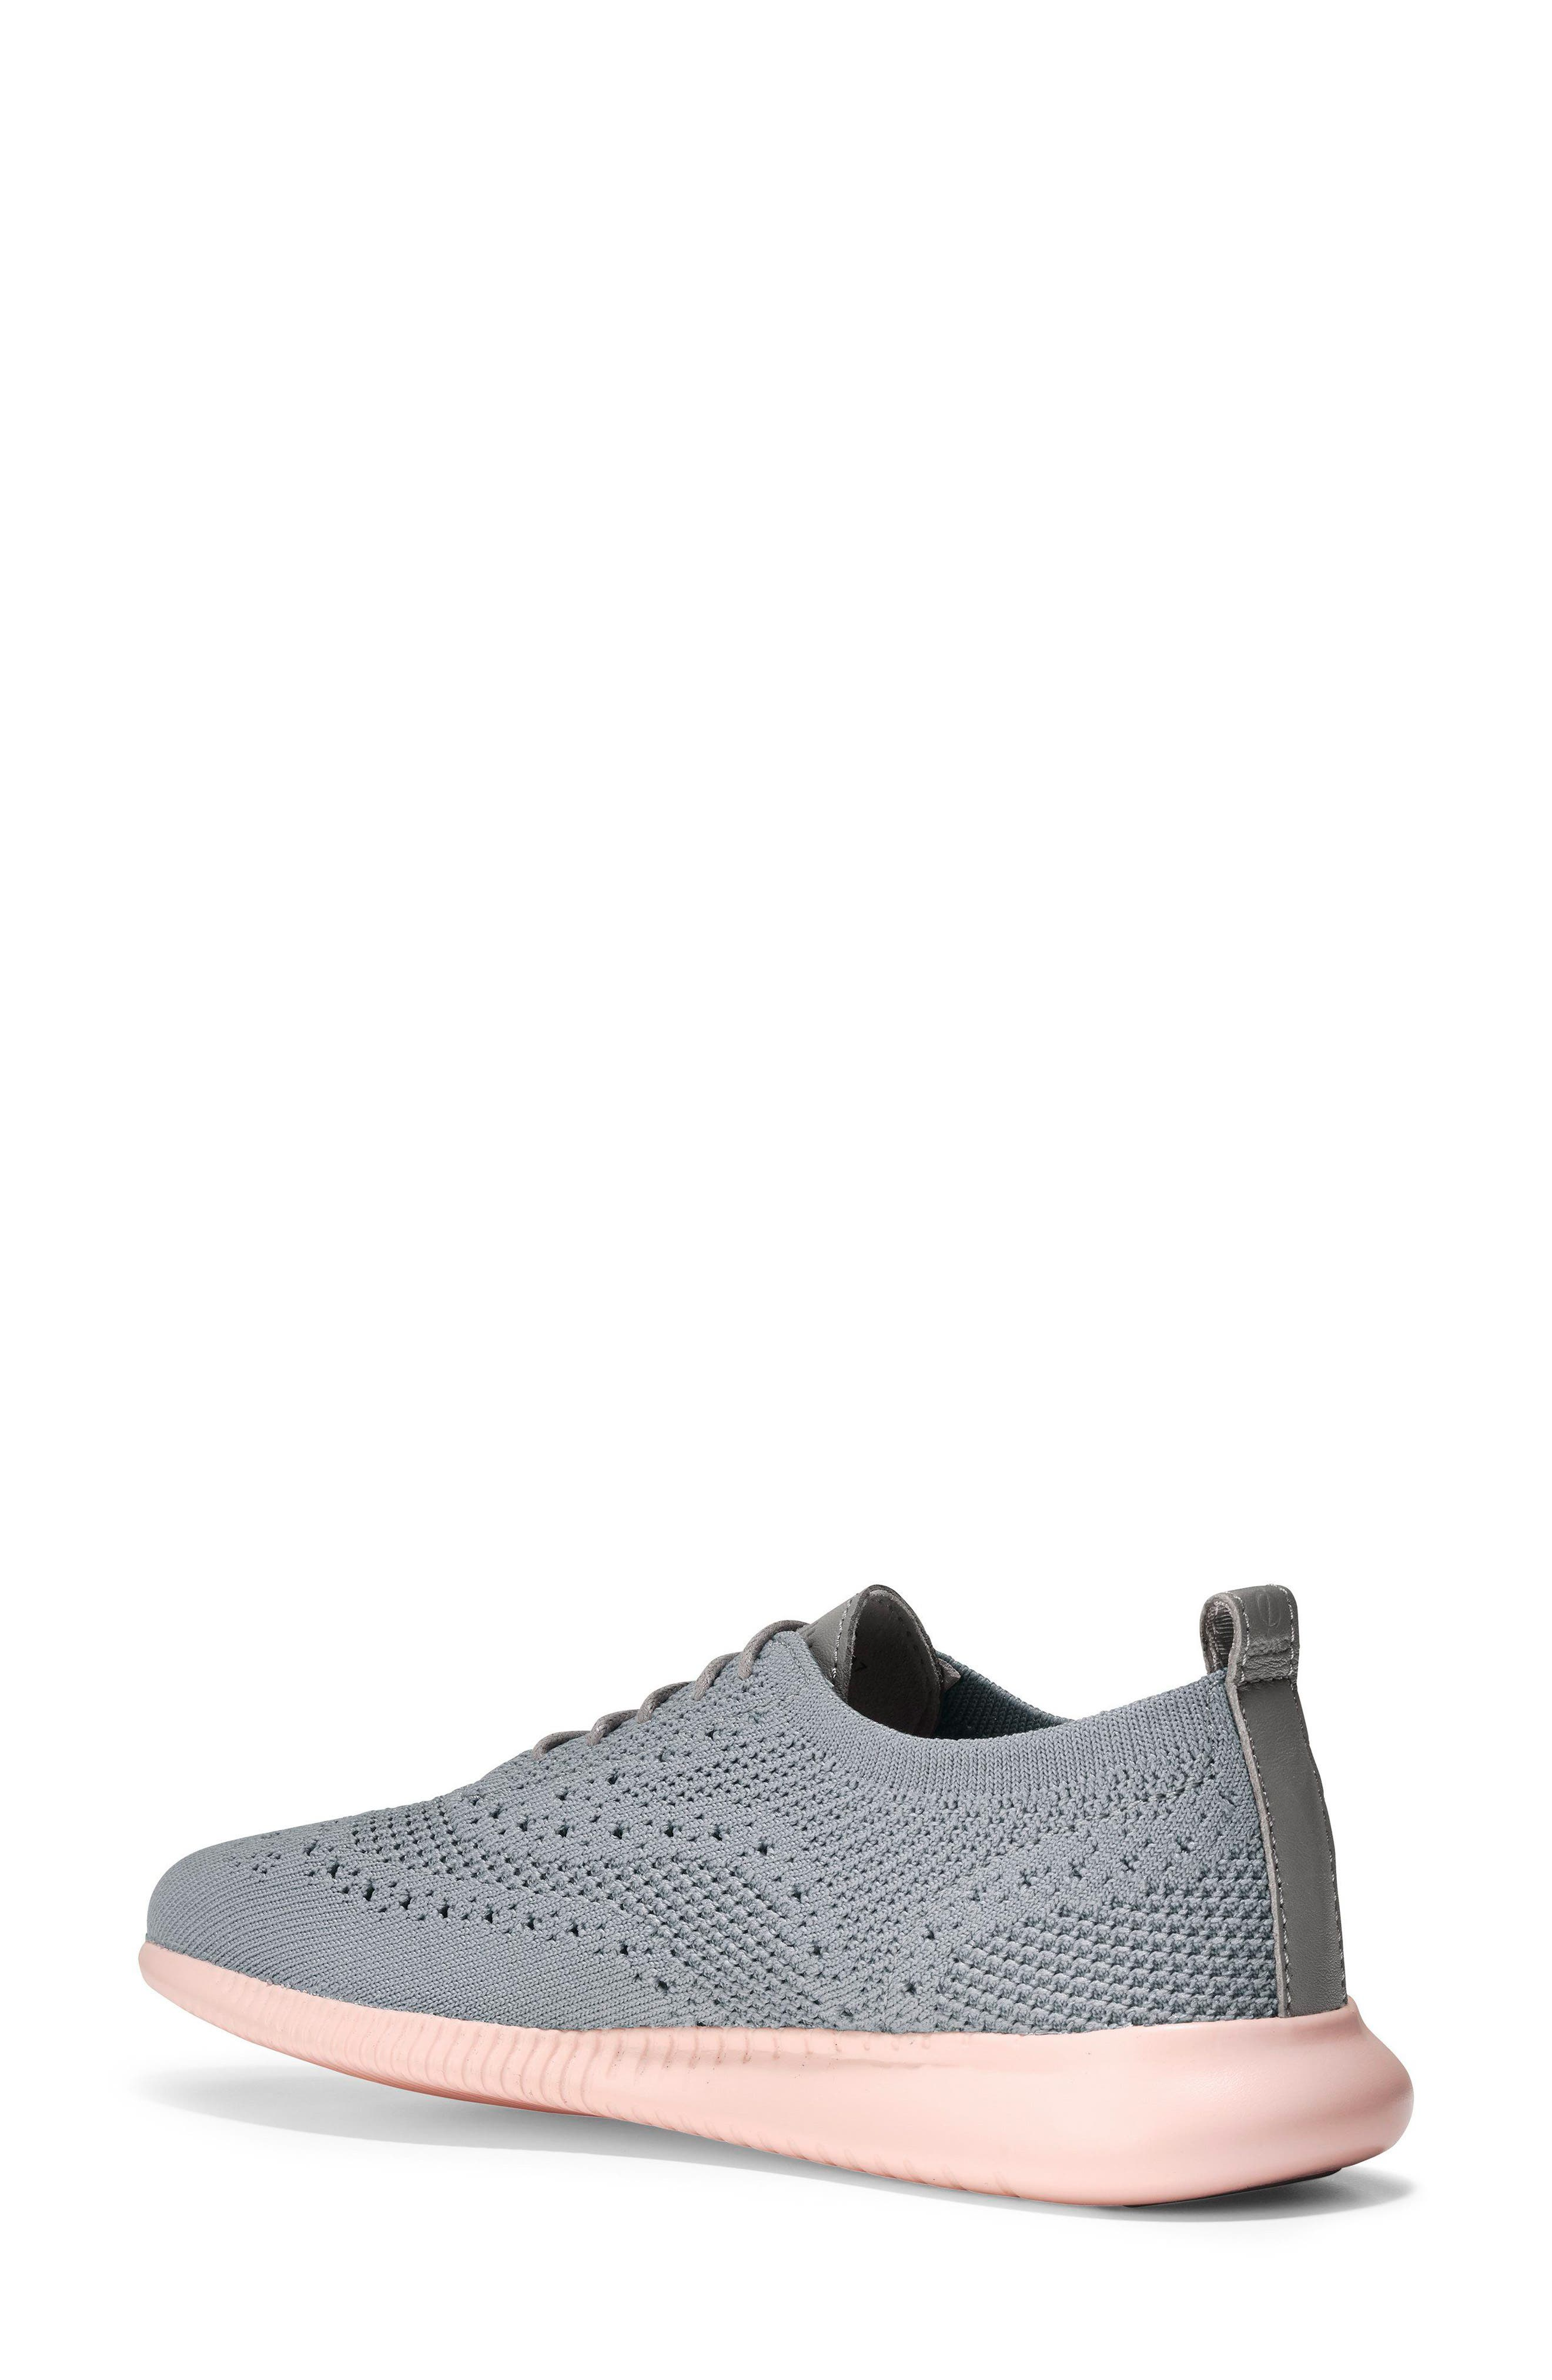 2.ZERØGRAND Stitchlite Wingtip Sneaker,                             Alternate thumbnail 2, color,                             Ironstone Knit Fabric